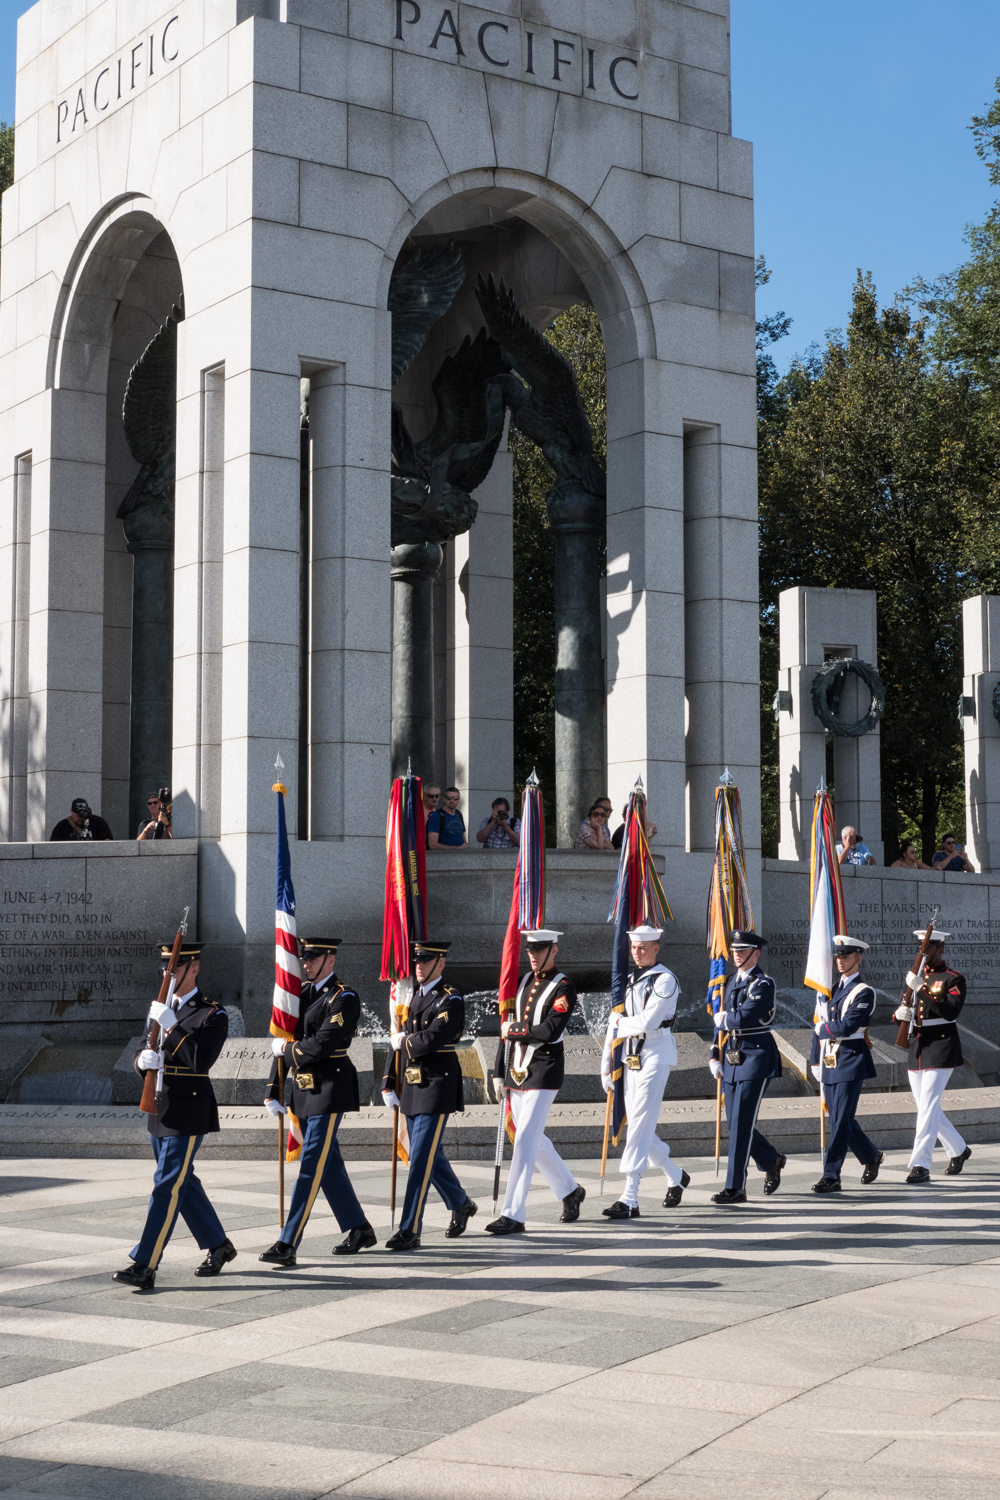 The Color Guard marches through the World War II Memorial in Washington, D.C. during an Honor Flight event. Honor Flight is when veterans from around America visit the memorials on The National Mall.